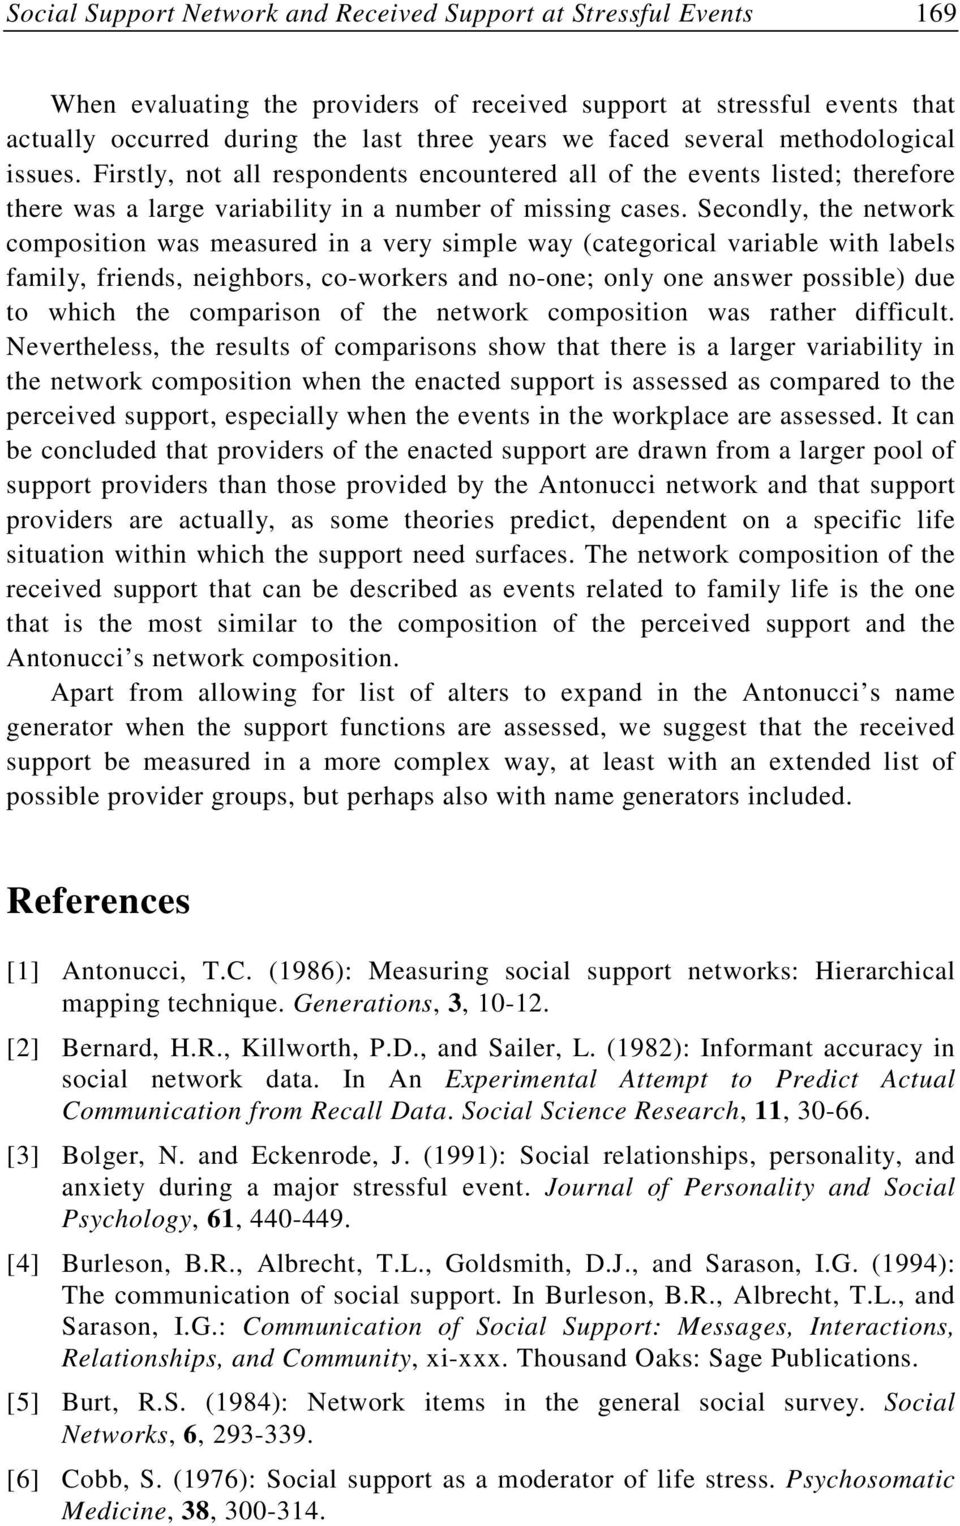 Secondly, the network composition was measured in a very simple way (categorical variable with labels family, friends, neighbors, co-workers and no-one; only one answer possible) due to which the